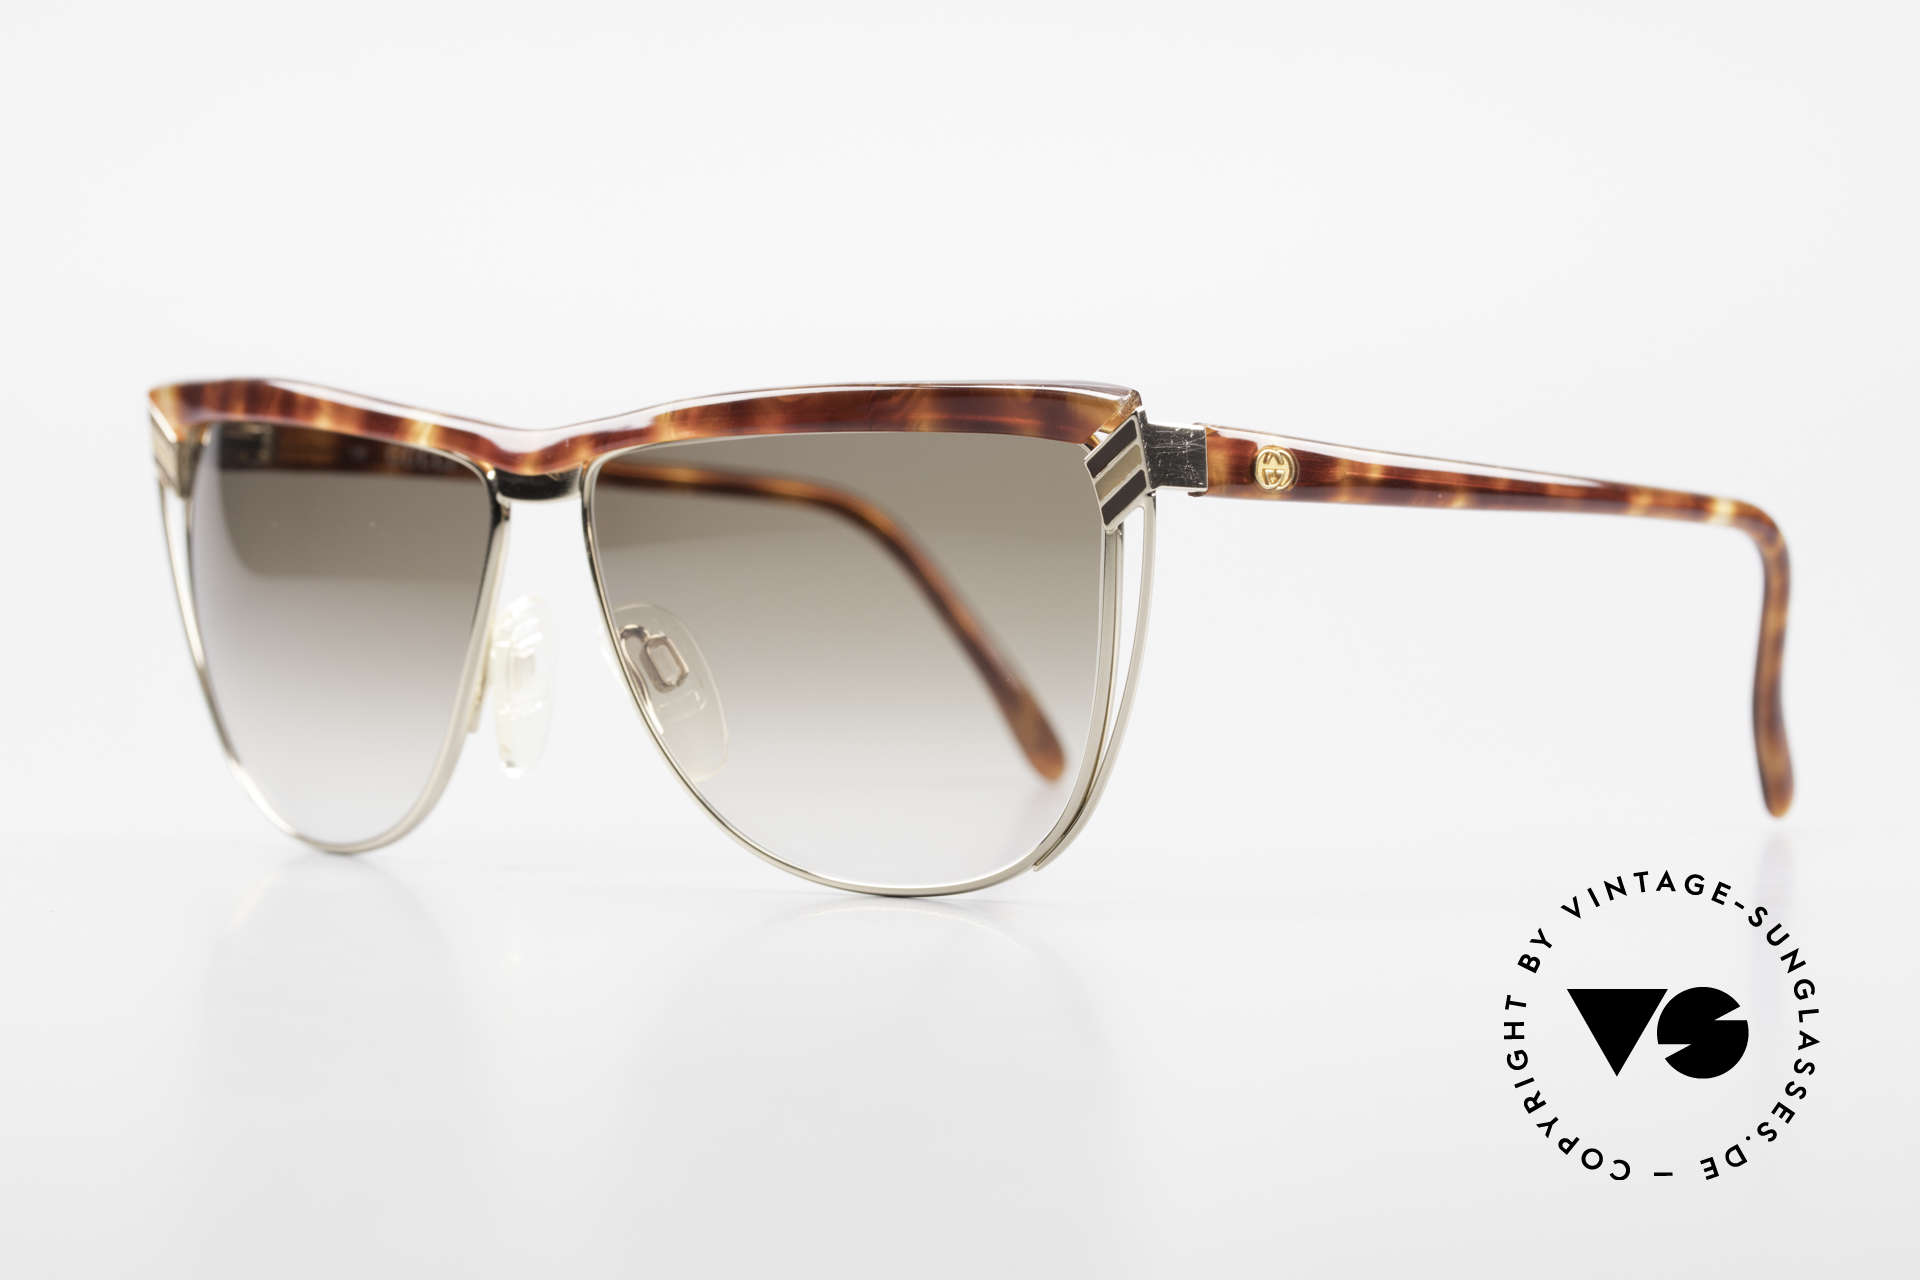 Gucci 2300 Ladies Designer Sunglasses 80s, a truly rare masterpiece of the late 80's from Italy, Made for Women